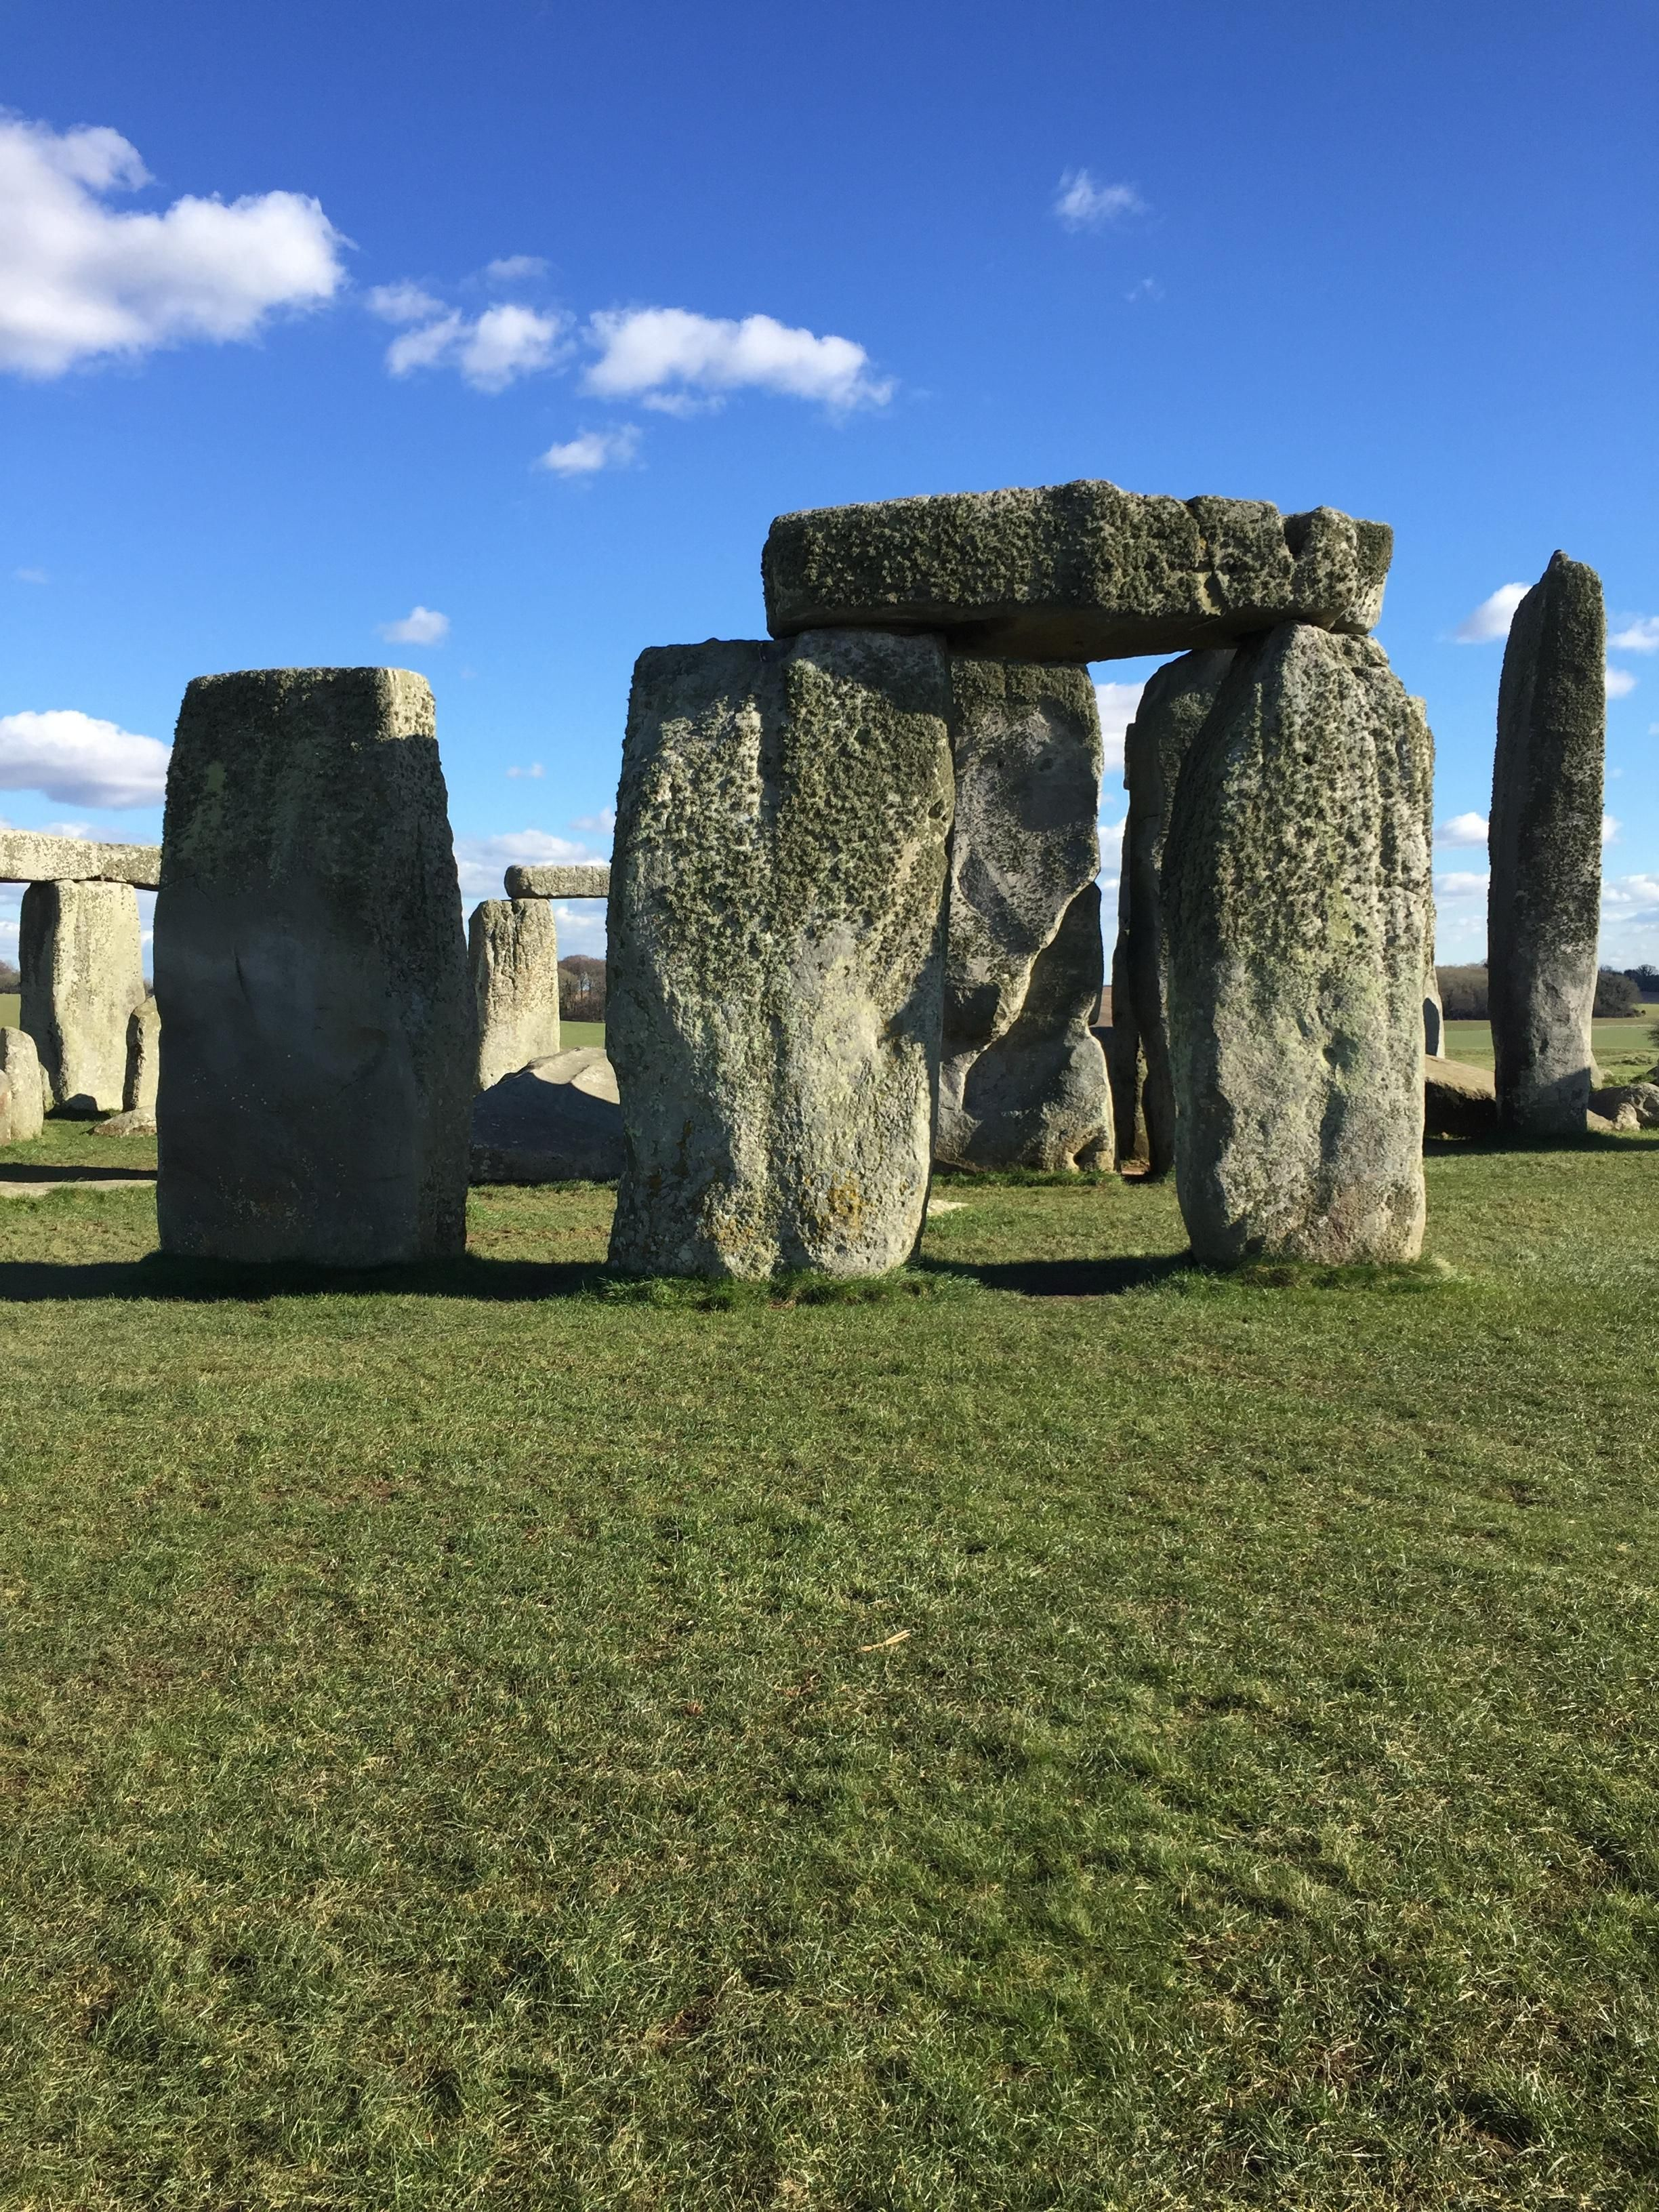 I went to Stonehenge and got some nice pictures to share with everyone!